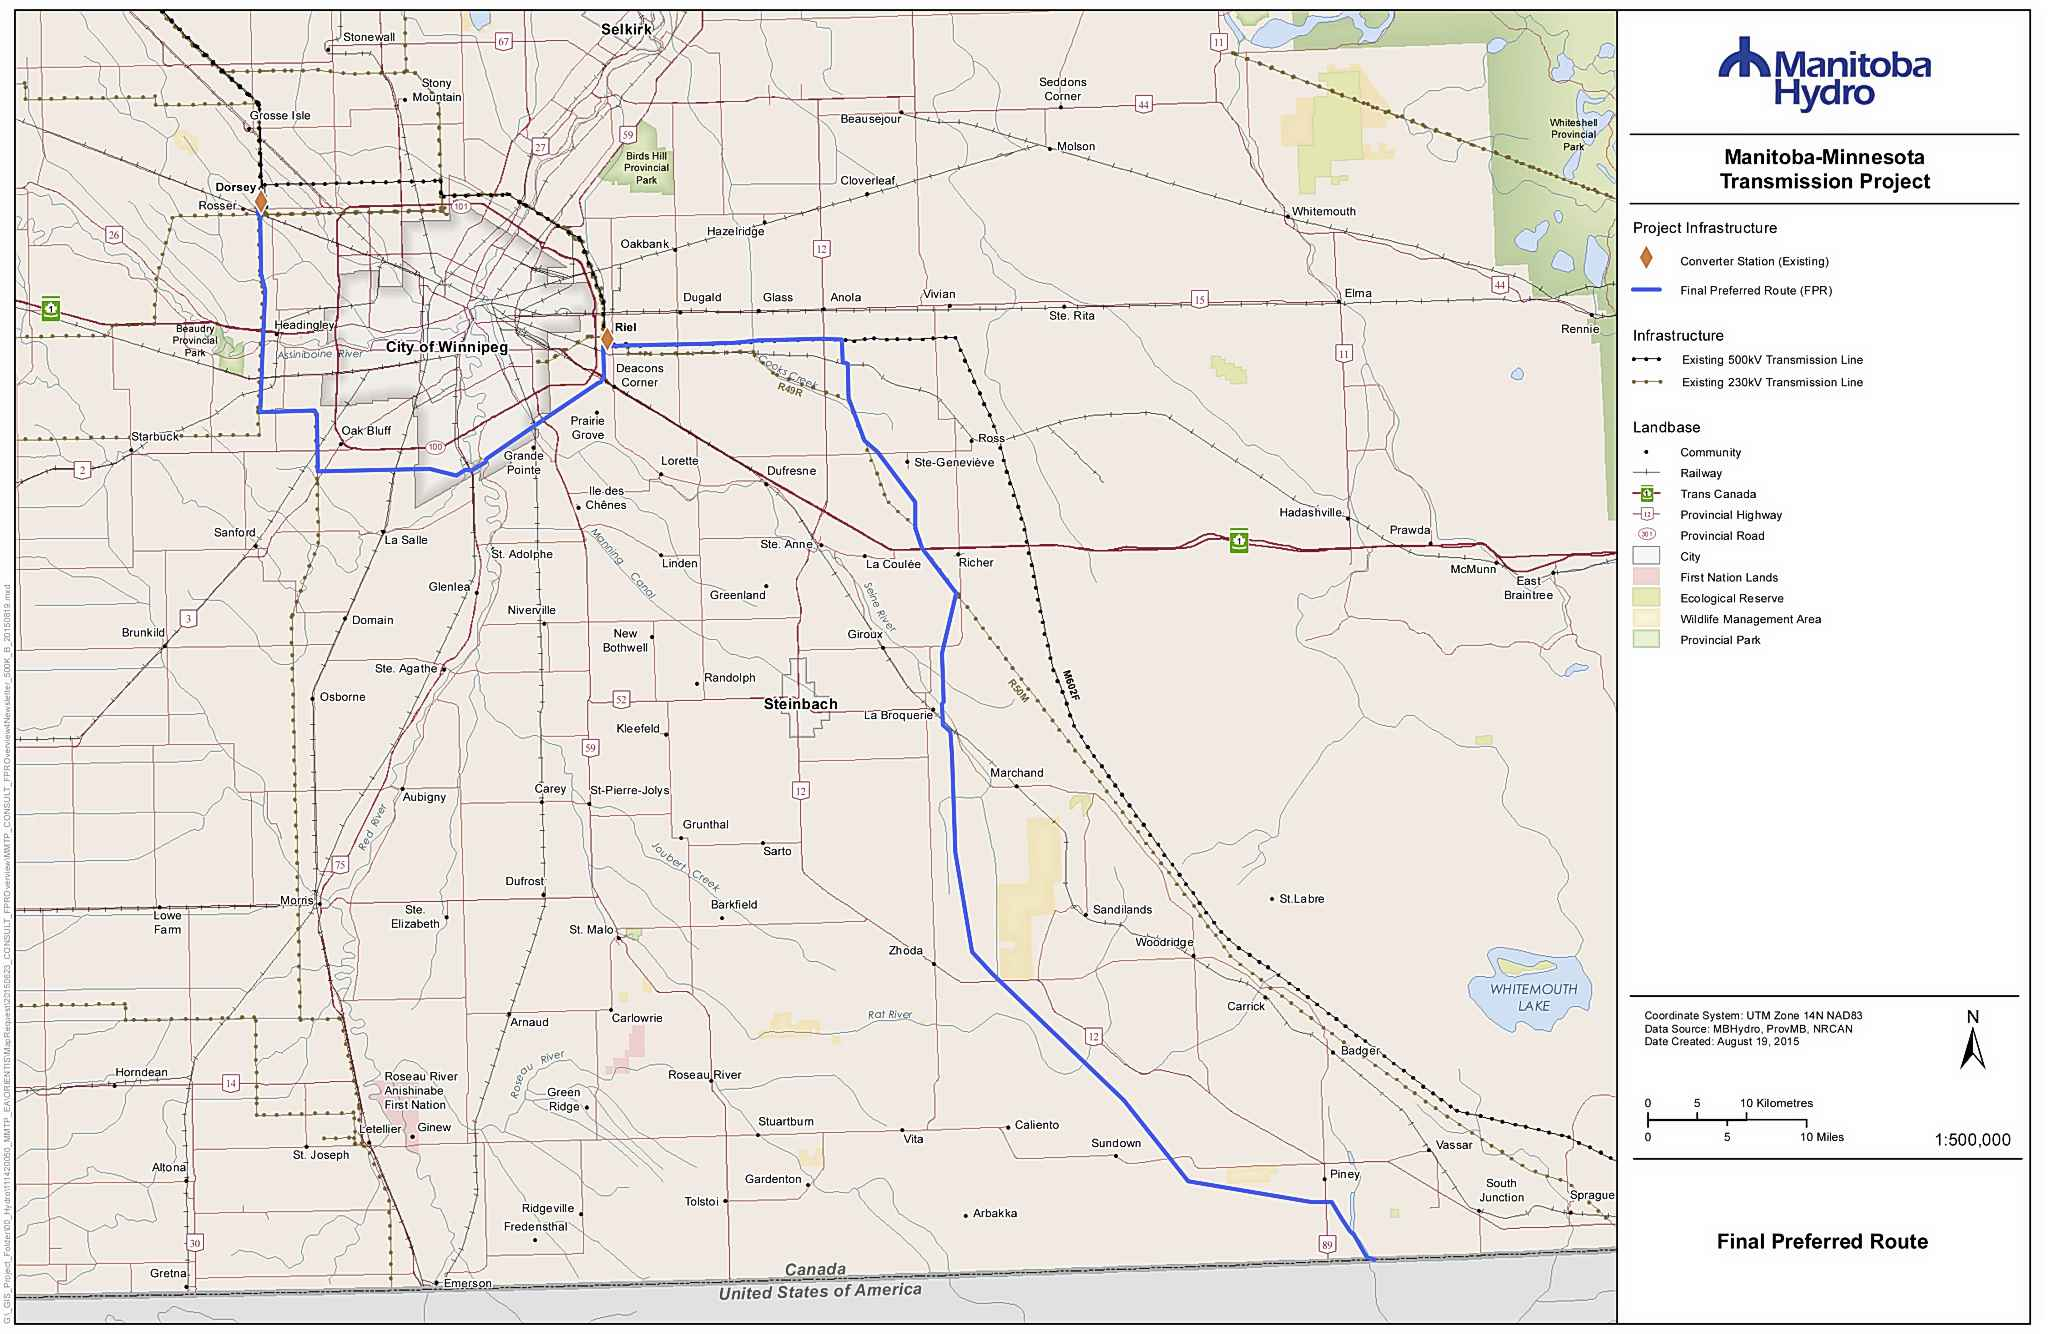 Manitoba–Minnesota Transmission Project Final Preferred Route map (Manitoba Hydro)